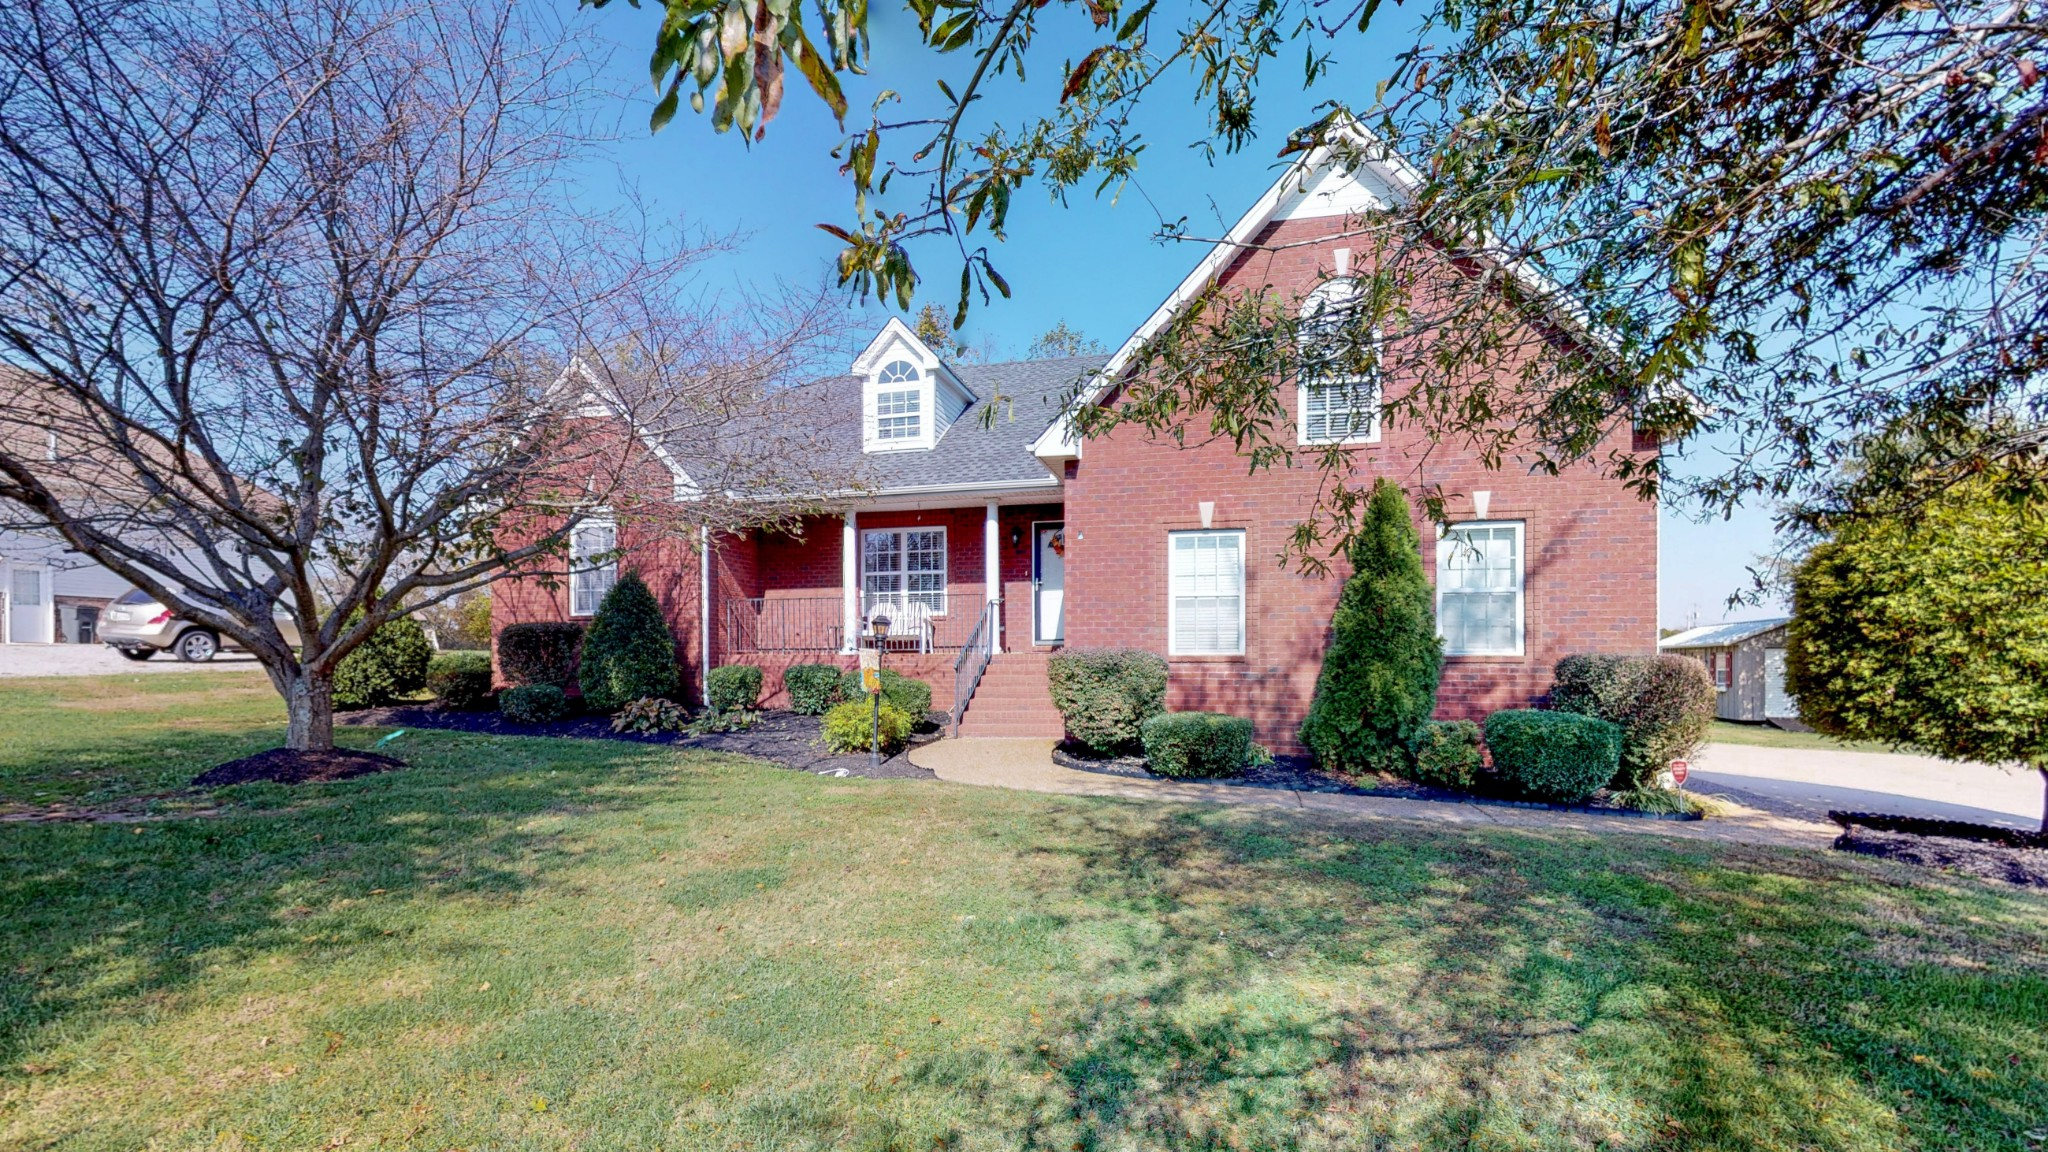 427 Clearview Rd, Cottontown, TN 37048 - Cottontown, TN real estate listing